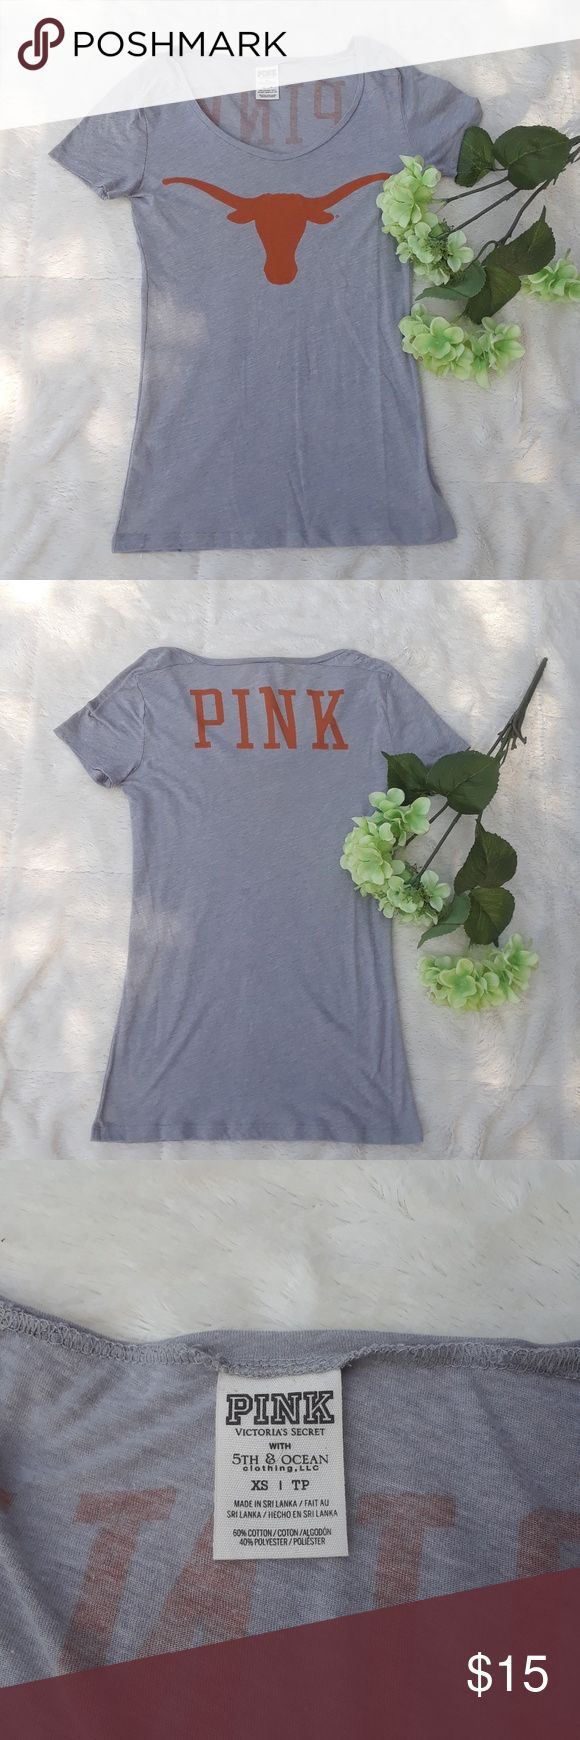 Victoria's Secret Pink UT Game Day Tee Get ready for game day in this Pink by Victoria's Secret Longhorn top. The school year is right around the corner, get your school pride on with this top. Size XS PINK Victoria's Secret Tops Tees - Short Sleeve